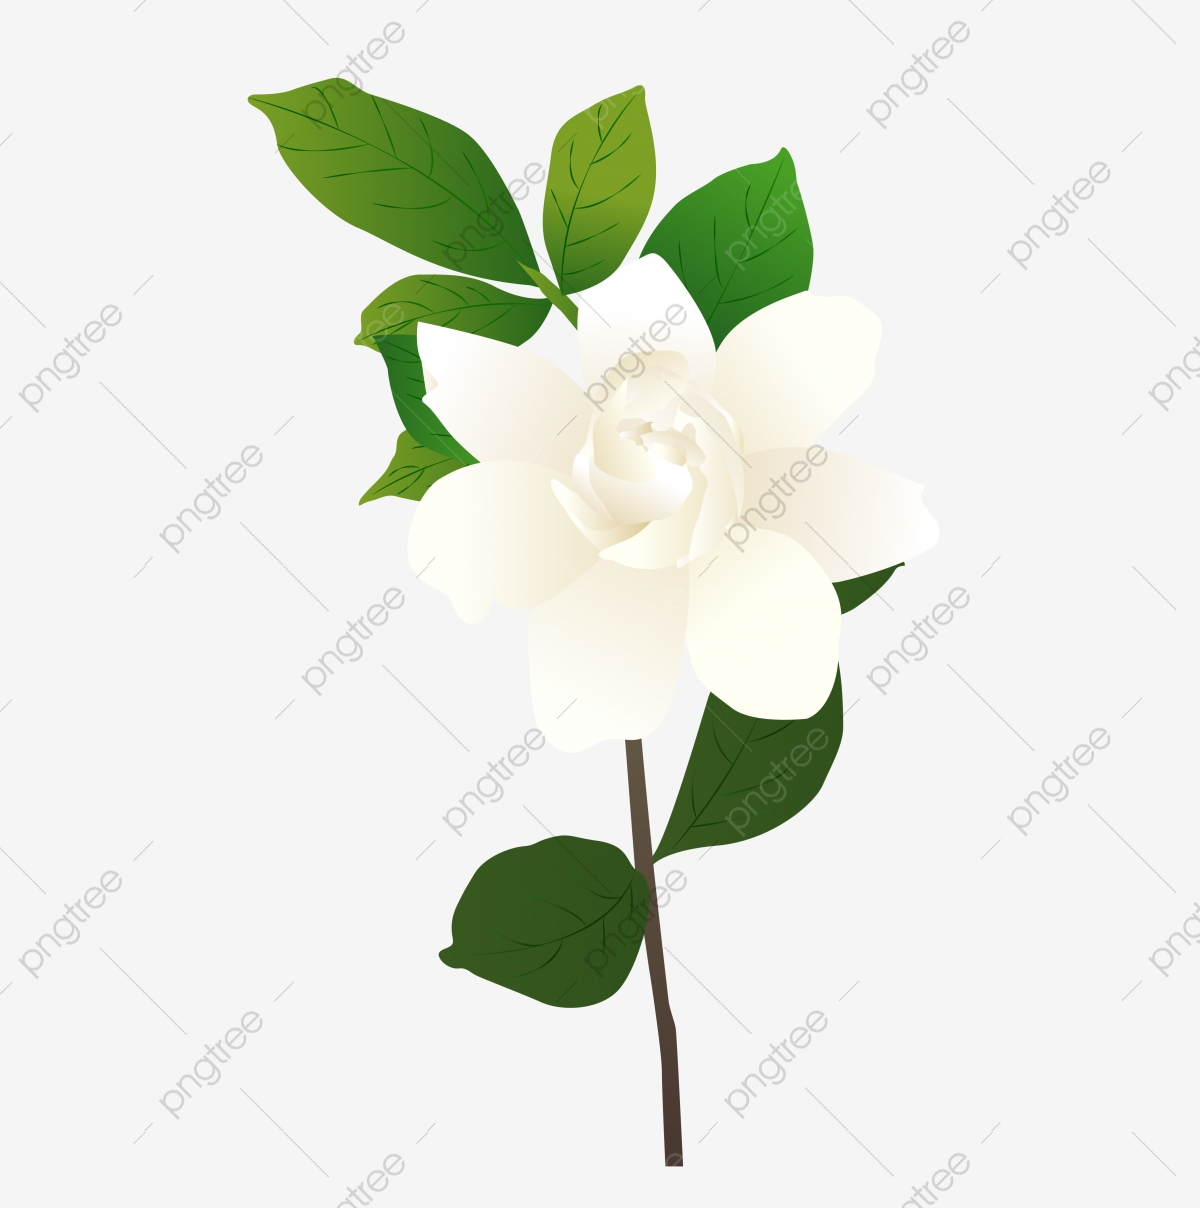 Hand Drawn Illustration Gardenia Flower Available For Commercial Use.